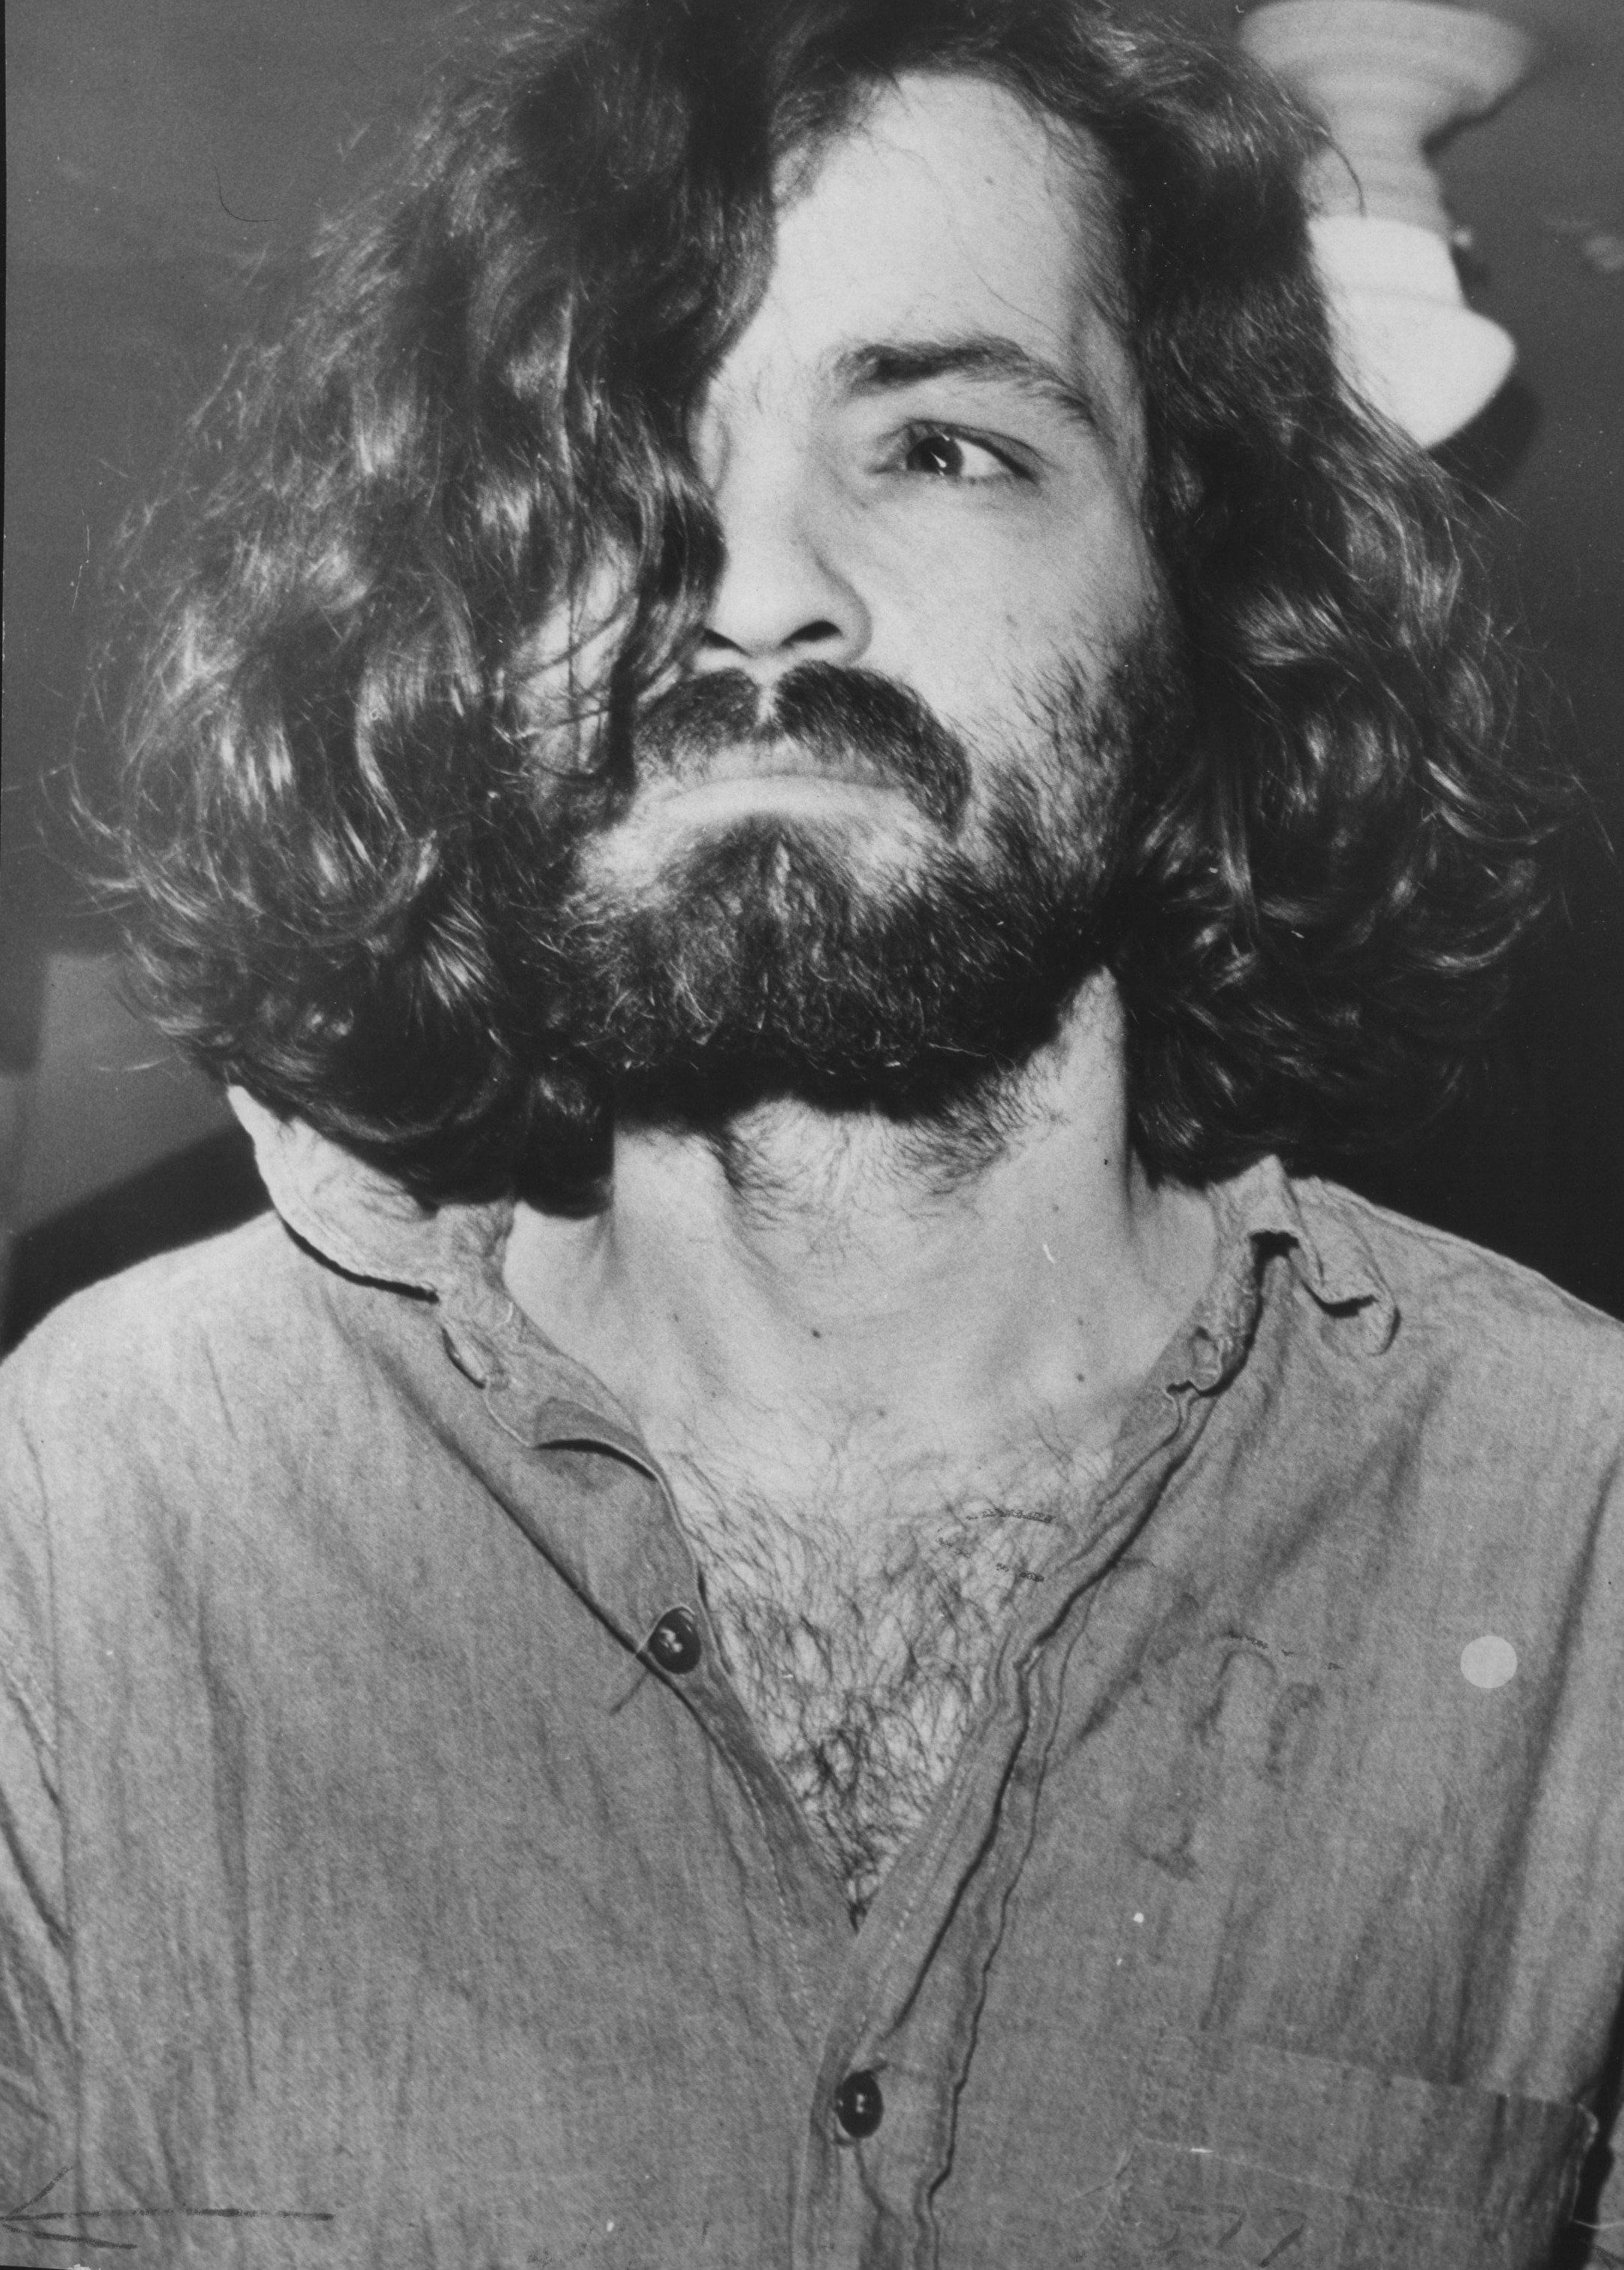 LOS ANGELES, CA : Charles Manson on his way to court in 1970. (Photo by Los Angeles Times via Getty Images)